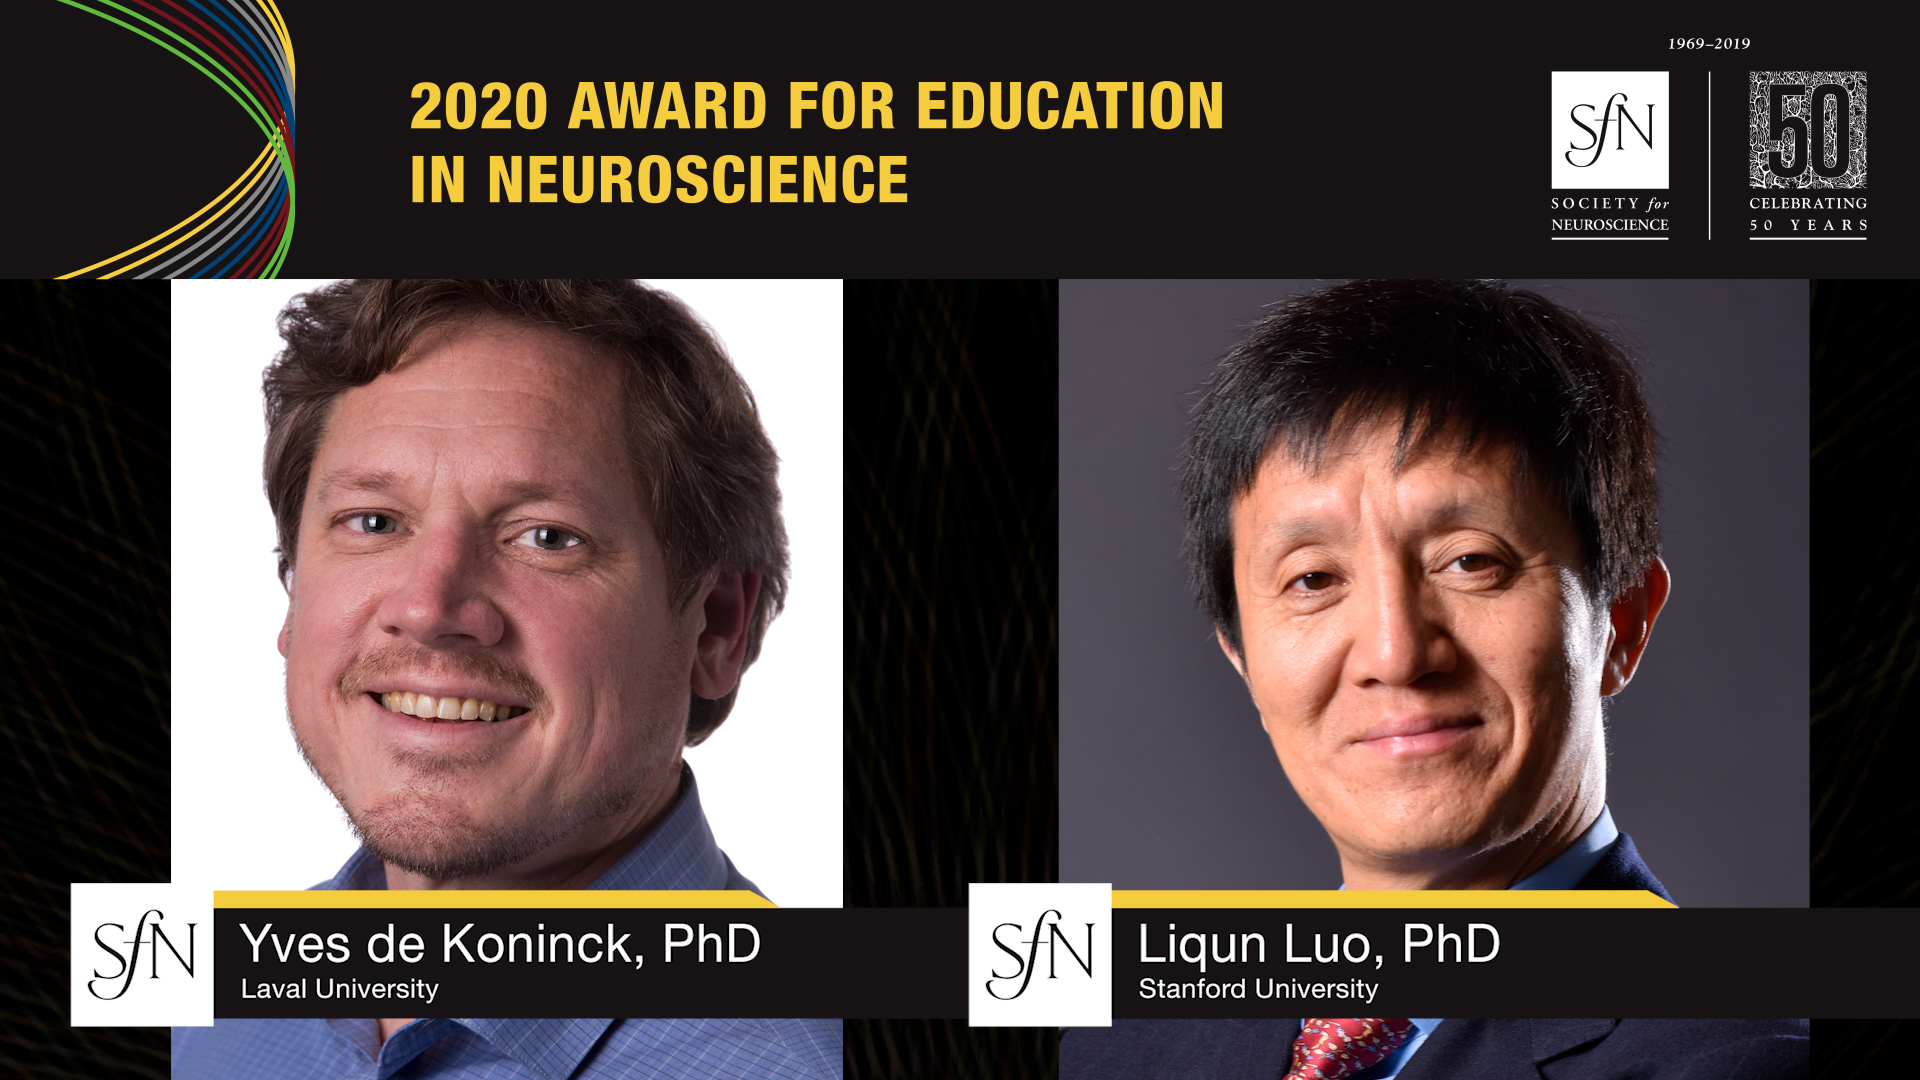 2020 Award for Education in Neuroscience award winners graphic, image of Yves de Koninck, PhD Laval University and Liqun Luo, PhD Stanford University